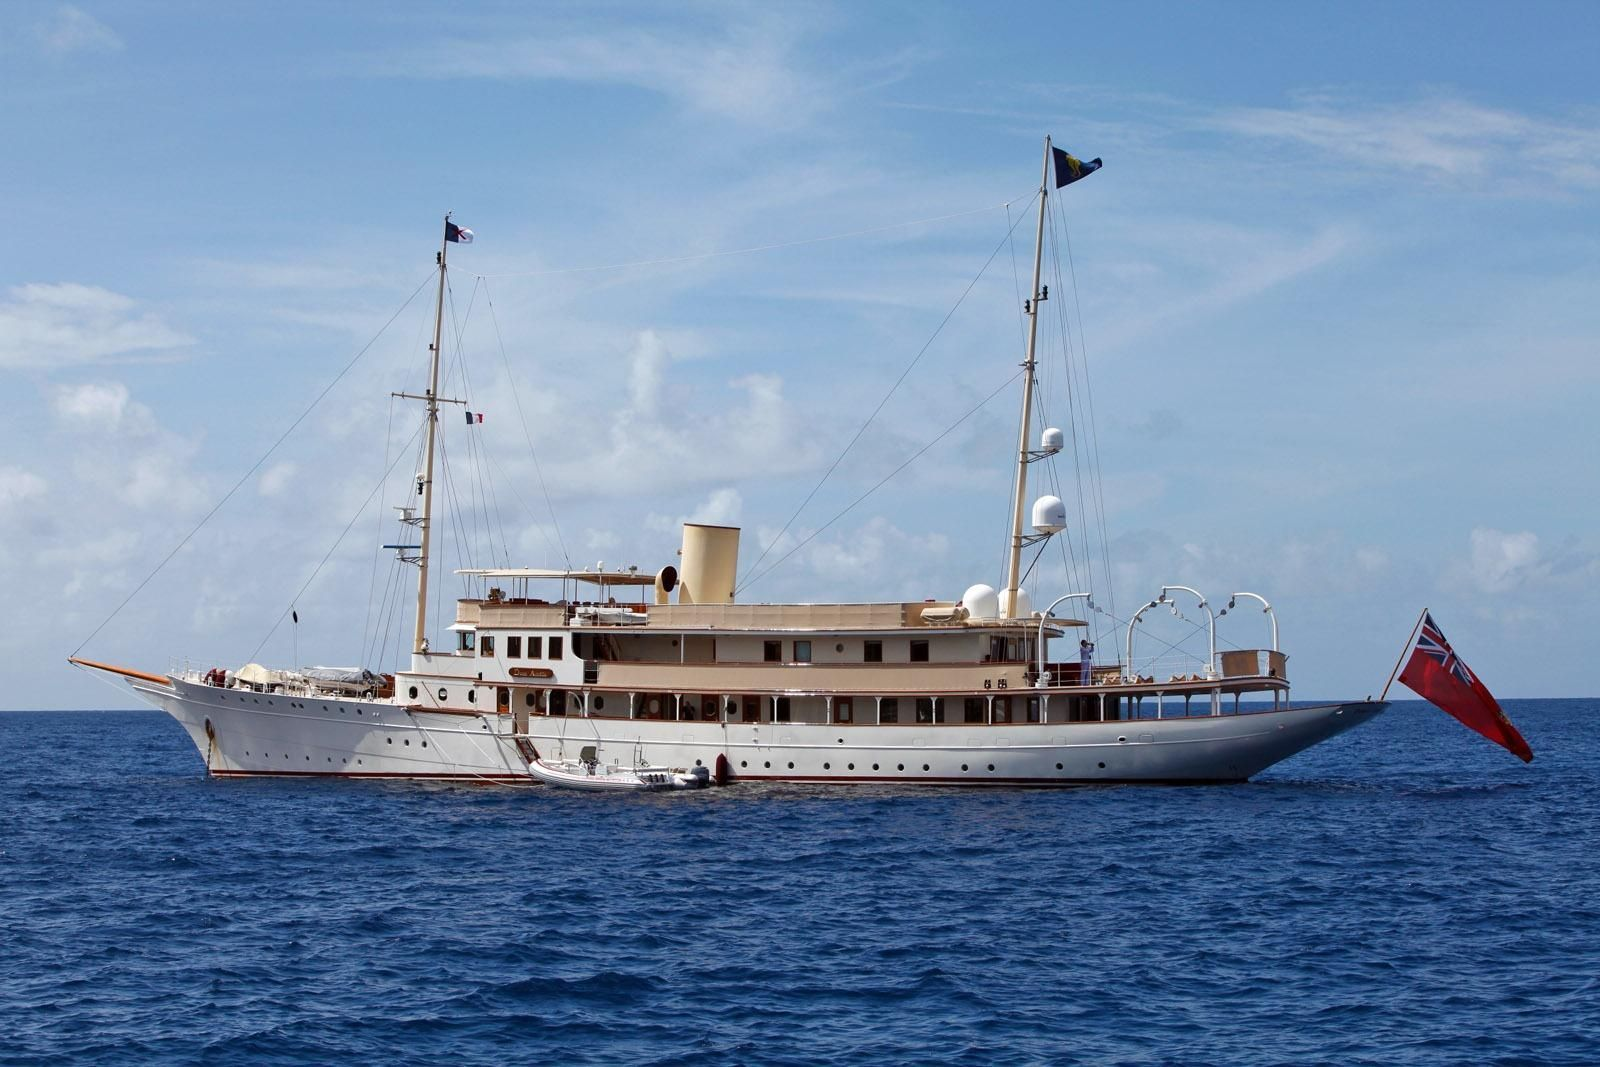 Browse Antique and Classic boats for sale   Boat, Classic ...